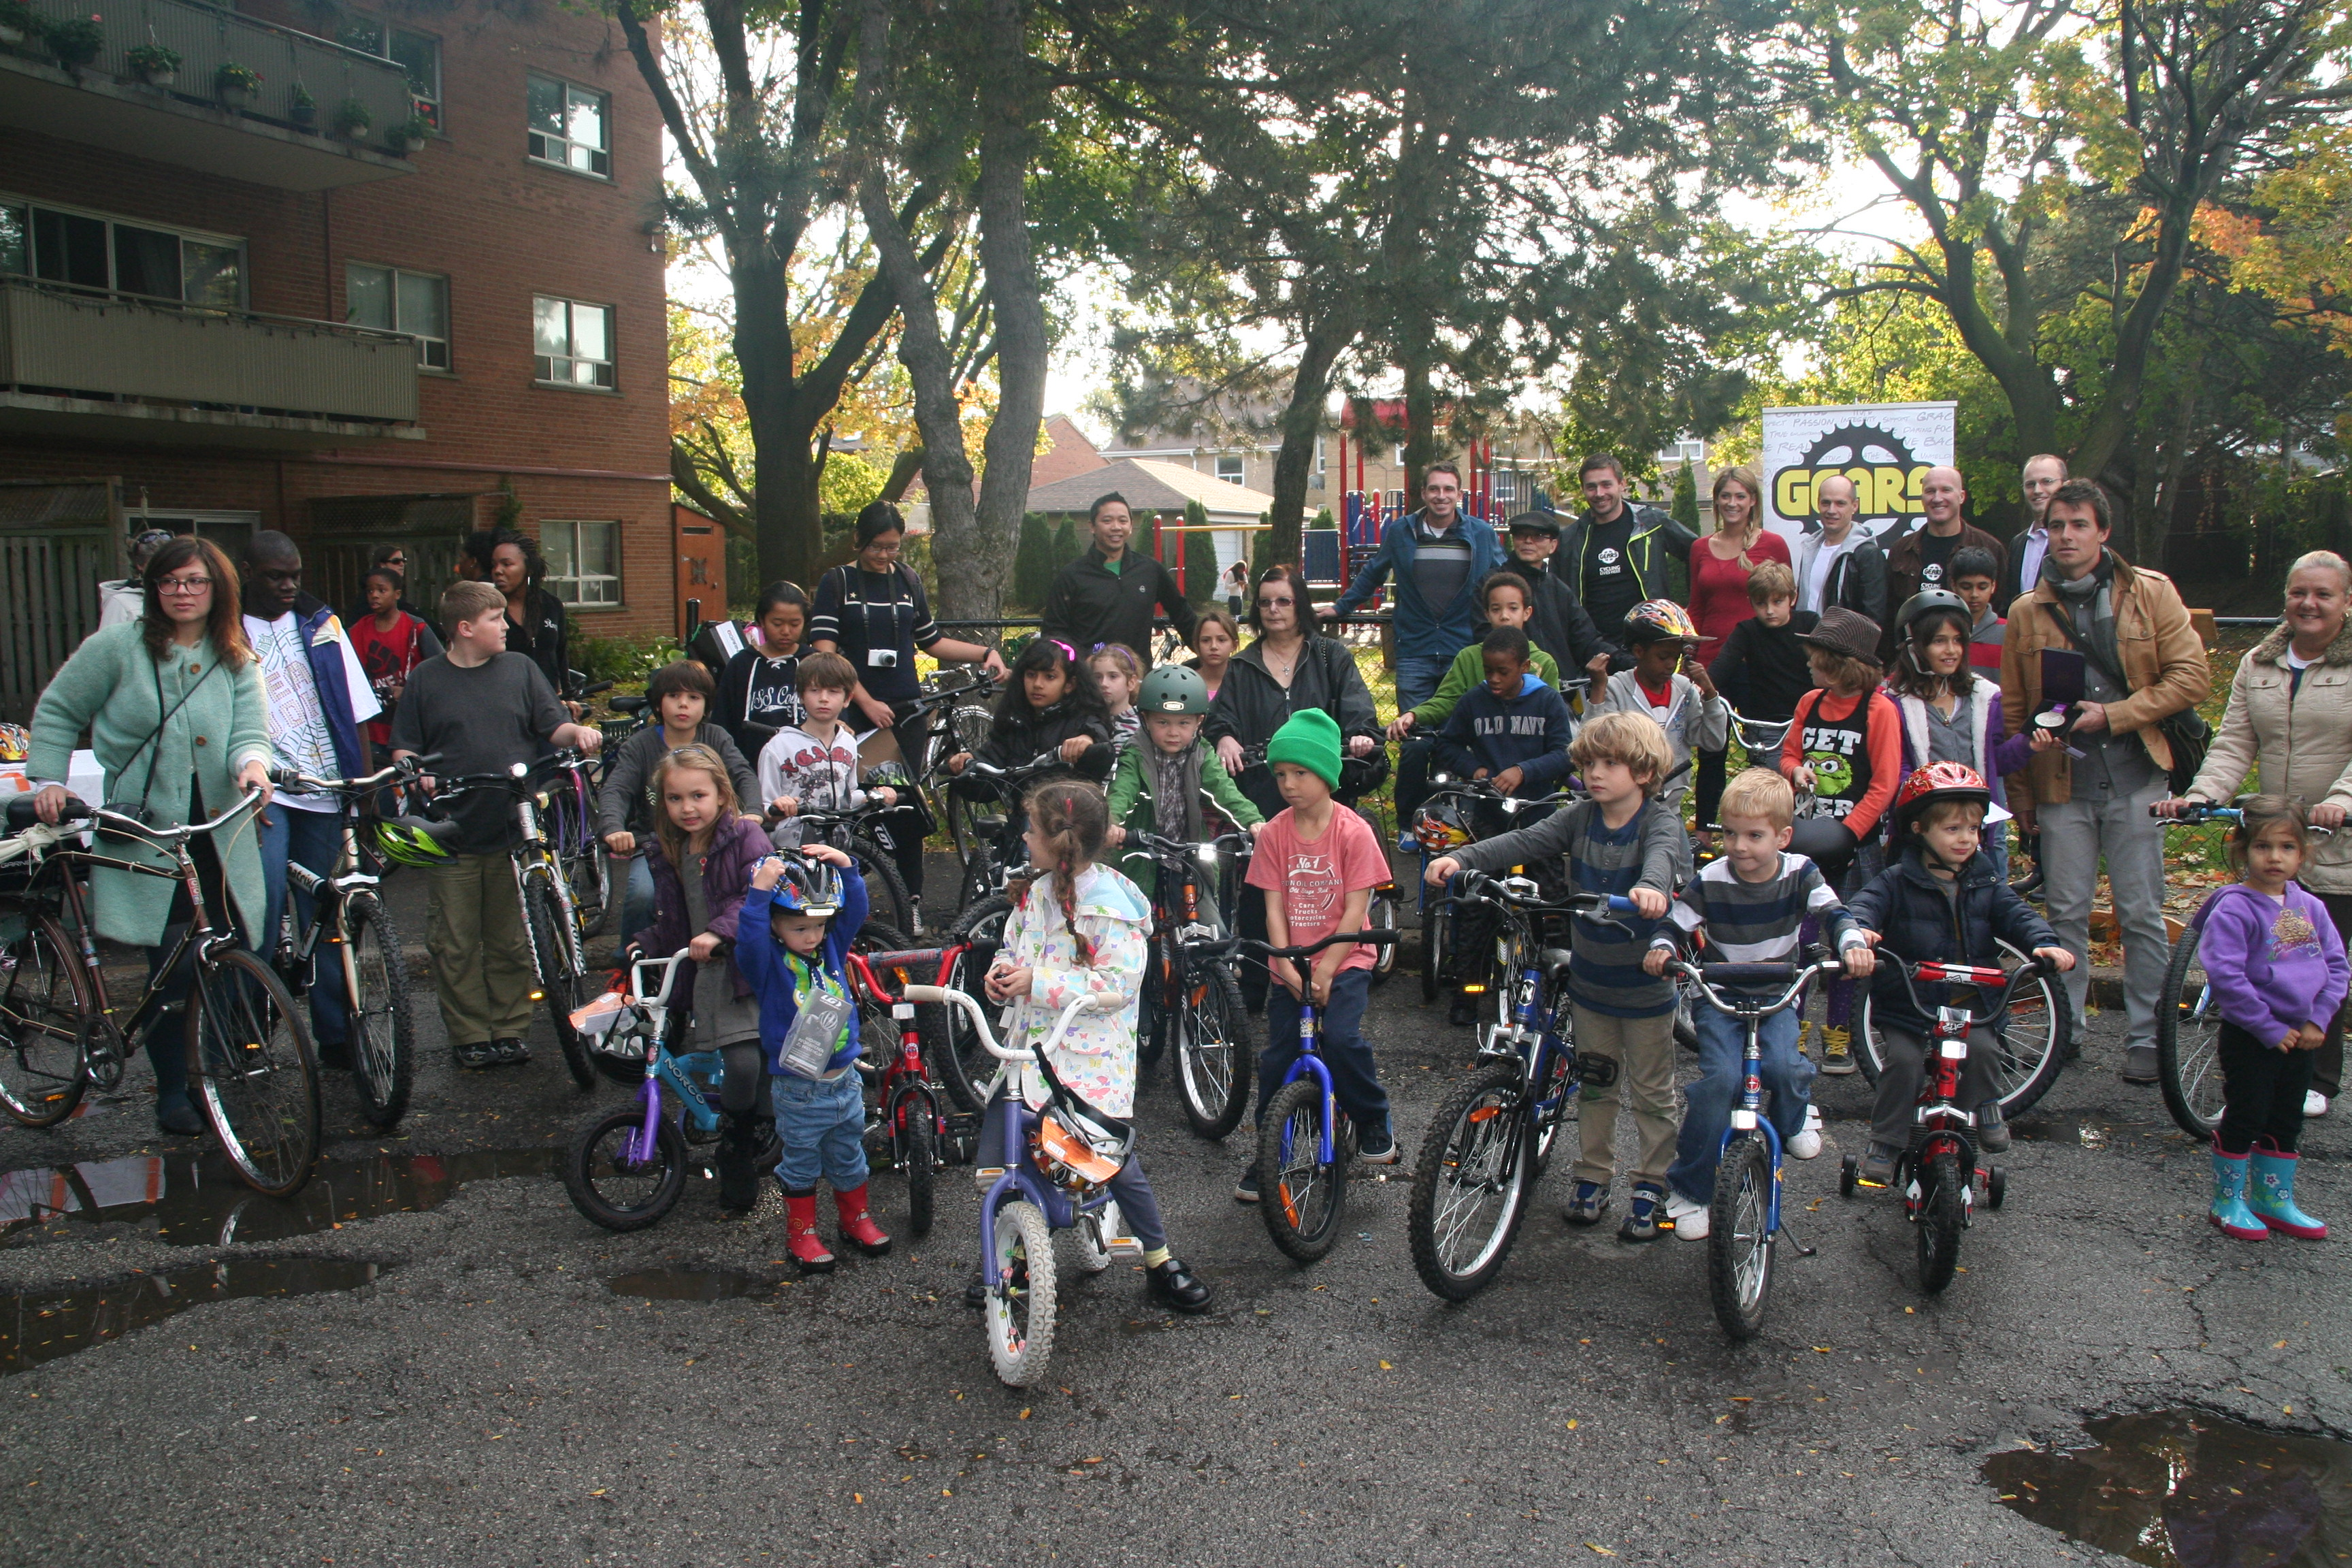 People of all ages, including many Toronto Community Housing residents, won bikes in the contest held for the Ward 19 community.